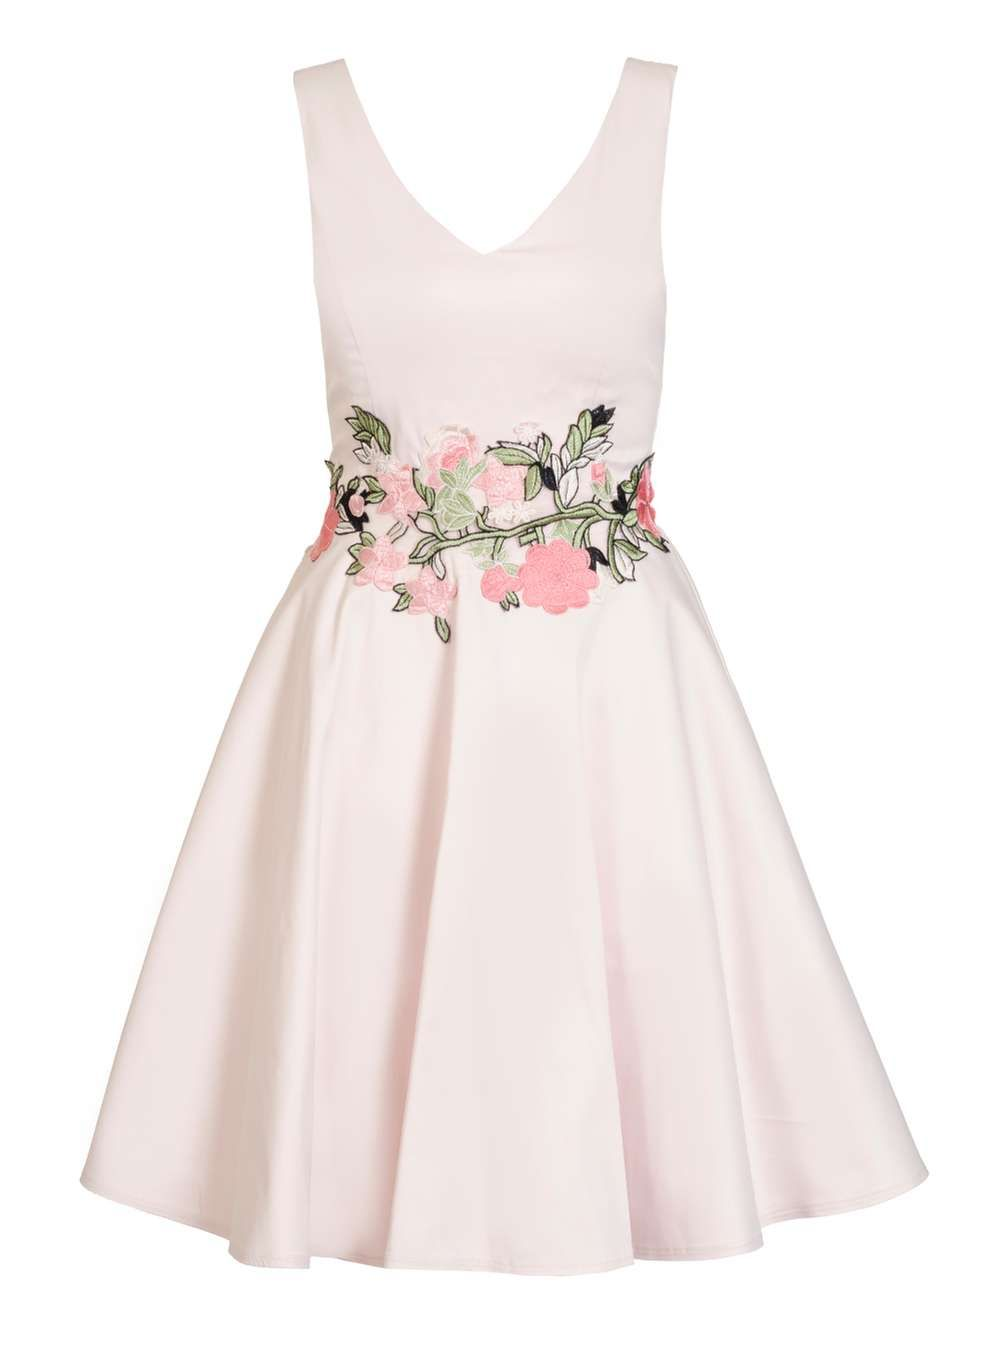 Quiz Pale Pink Floral Skater Dress - View All New In - New In ...